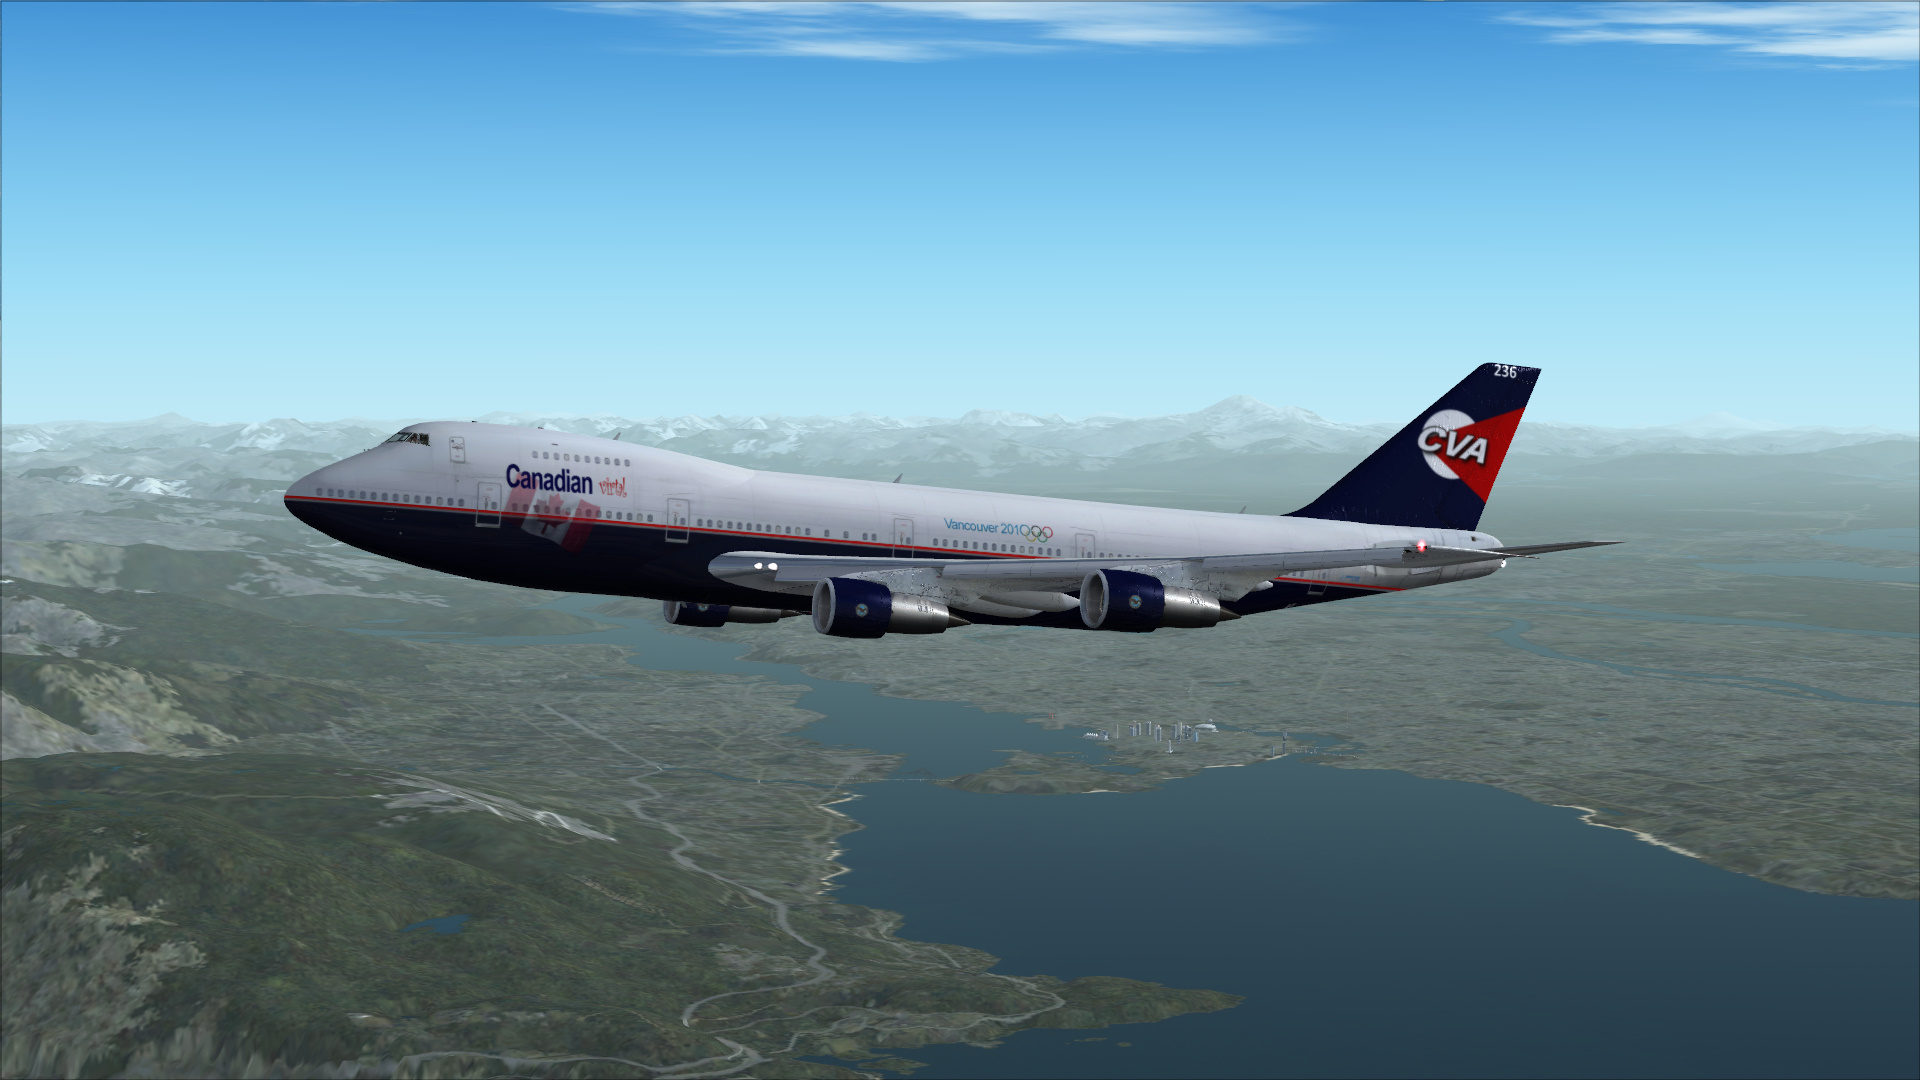 Climbing out above CYVR in CLS 747-200.